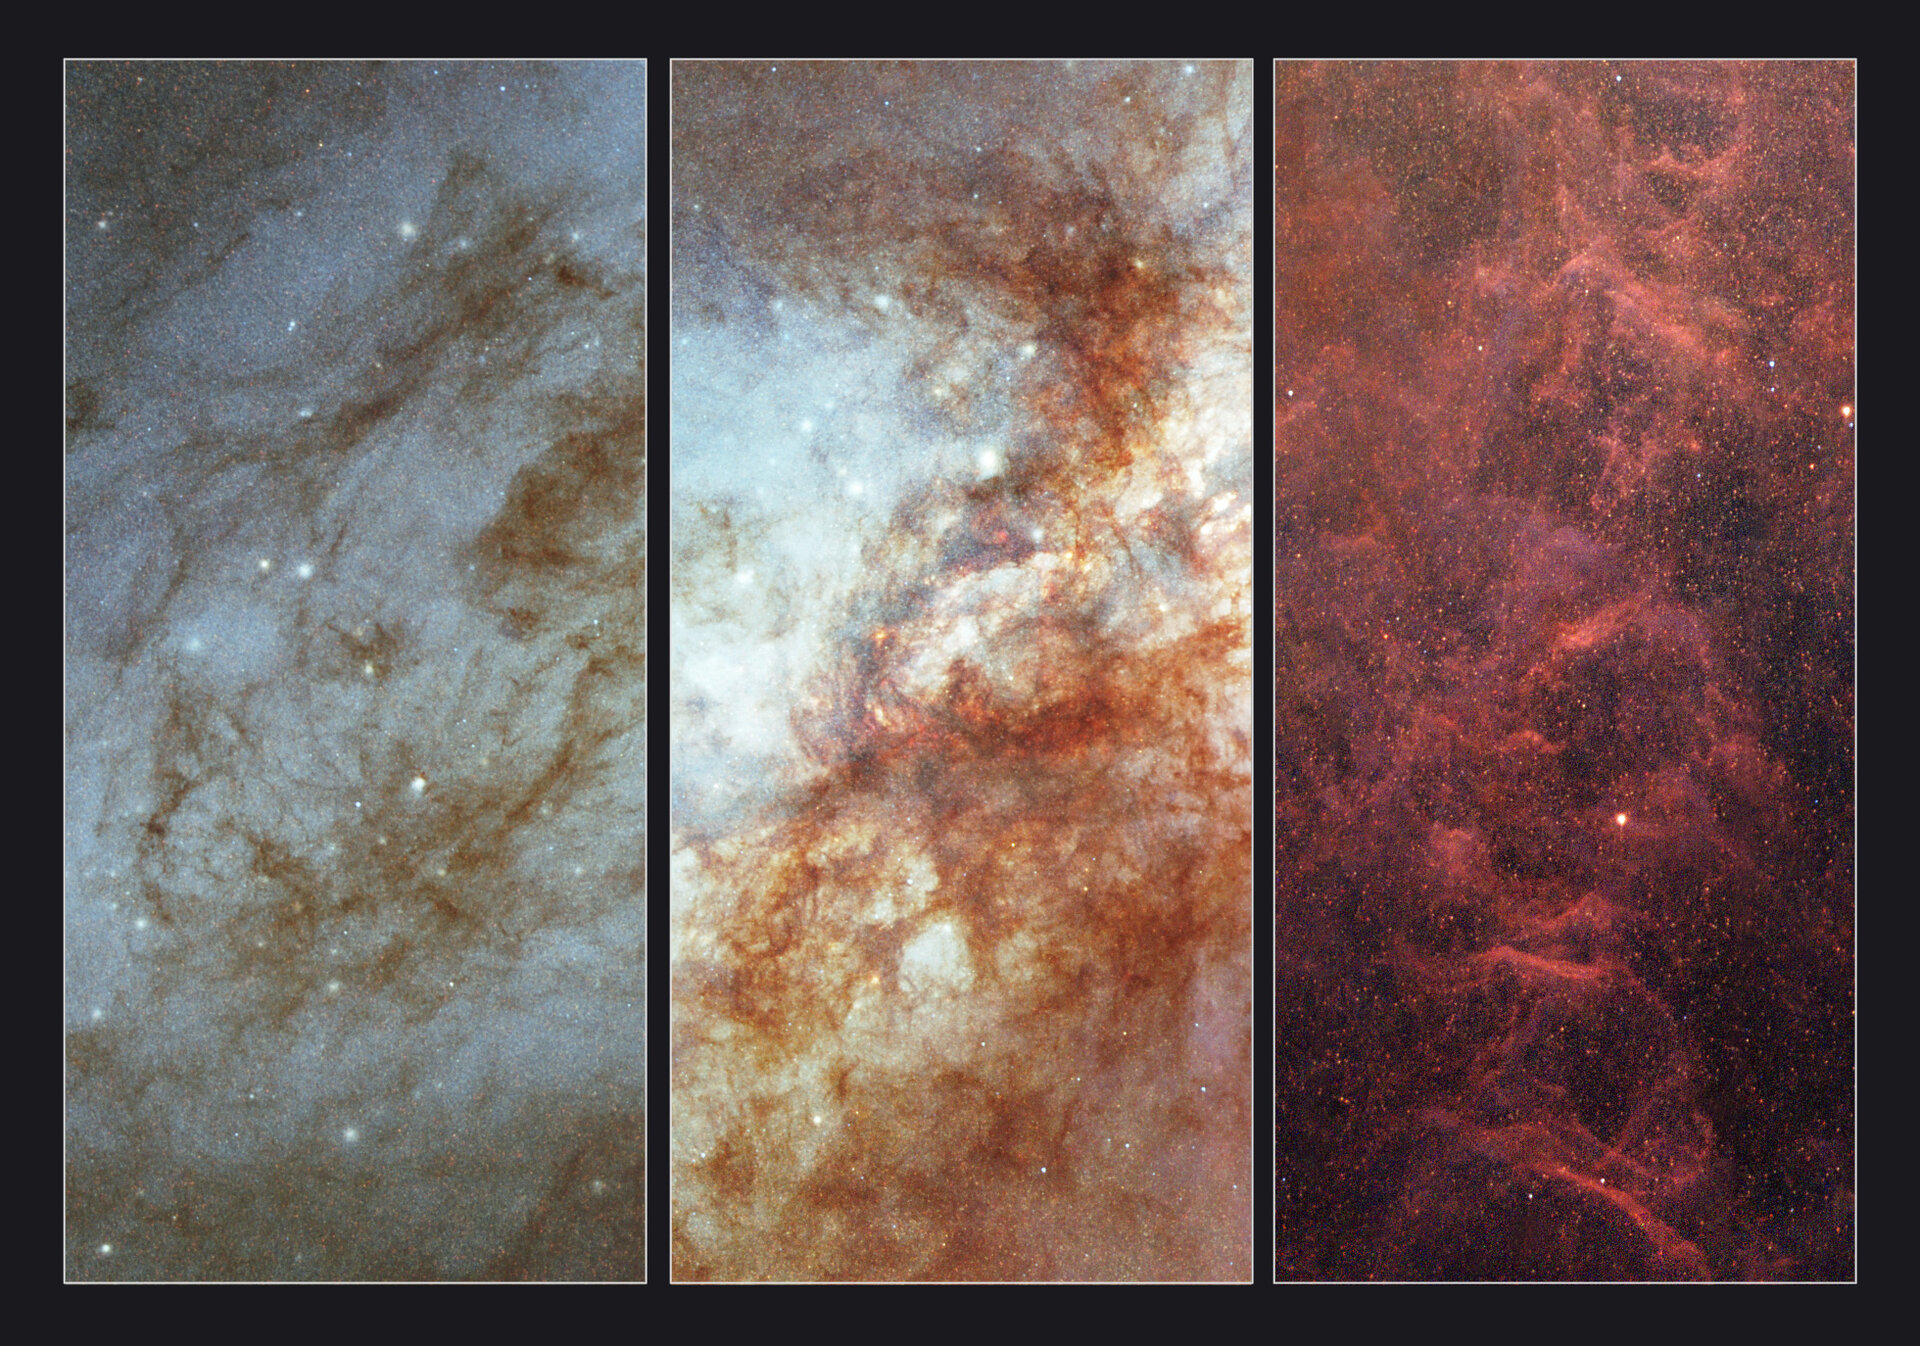 Close-up views of  the active galaxy M82